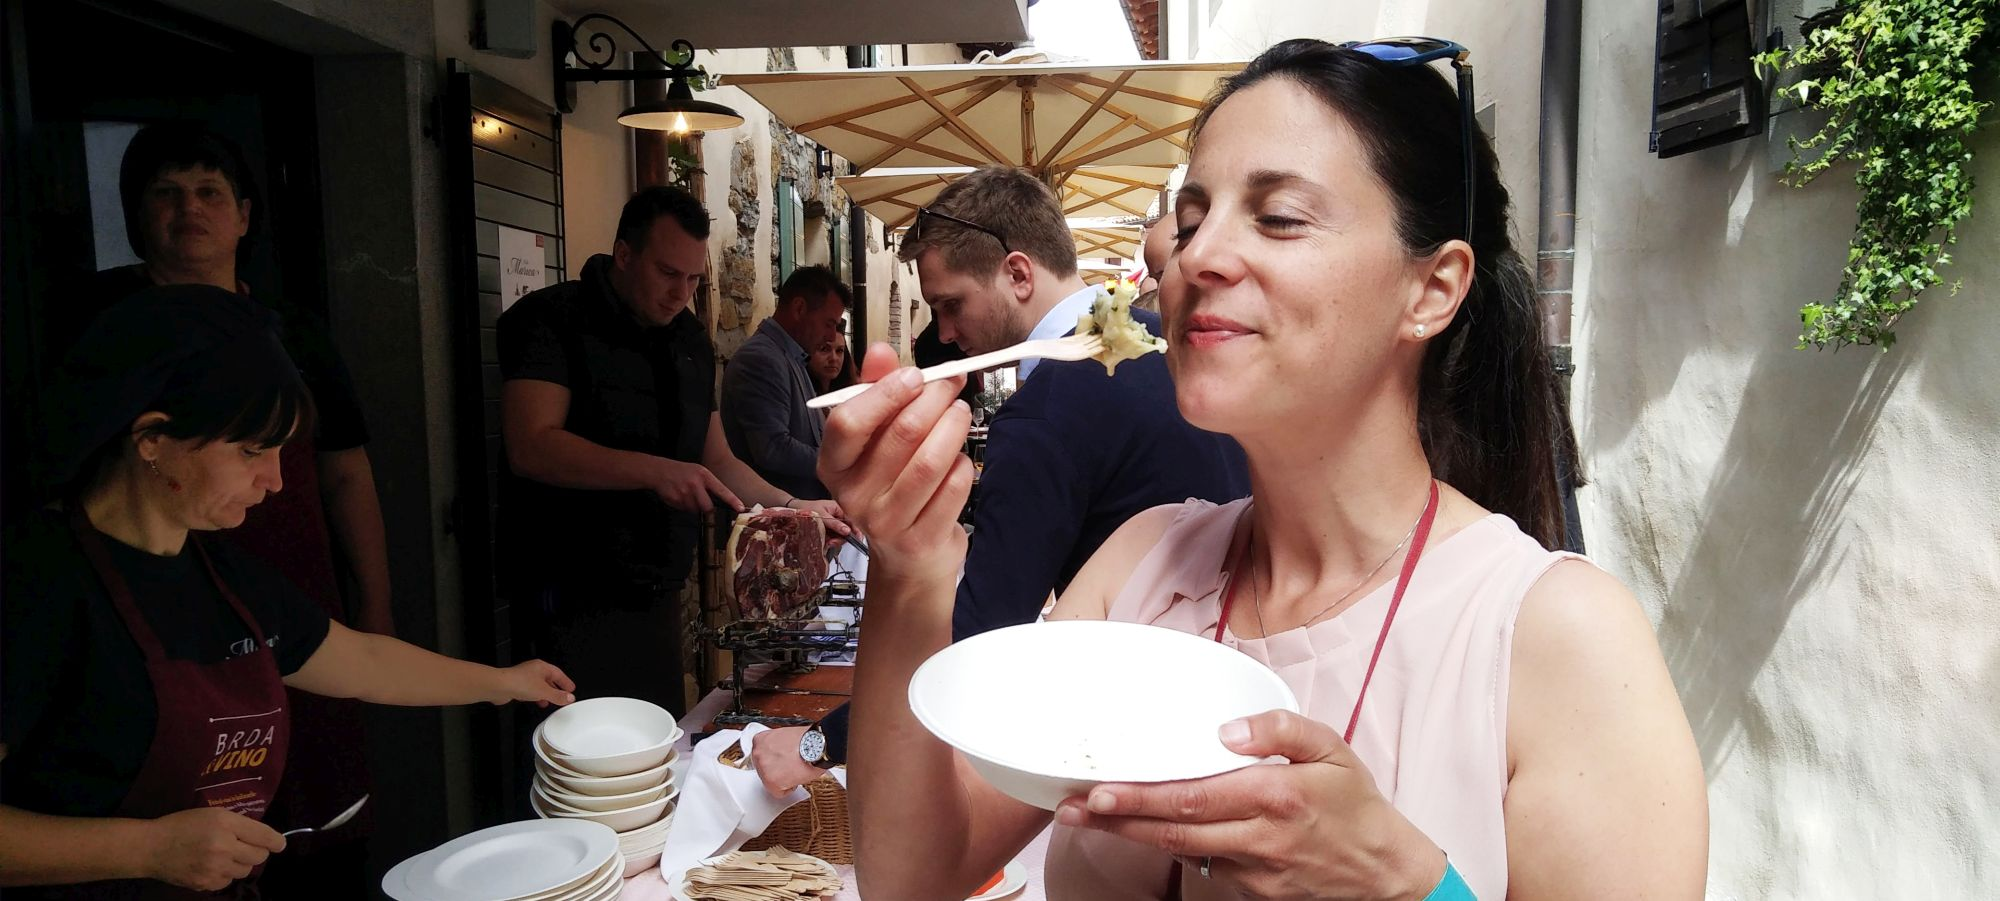 Denise of Wine Dine Slovenia enjoys some food at BRDA&VINO food and wine festival